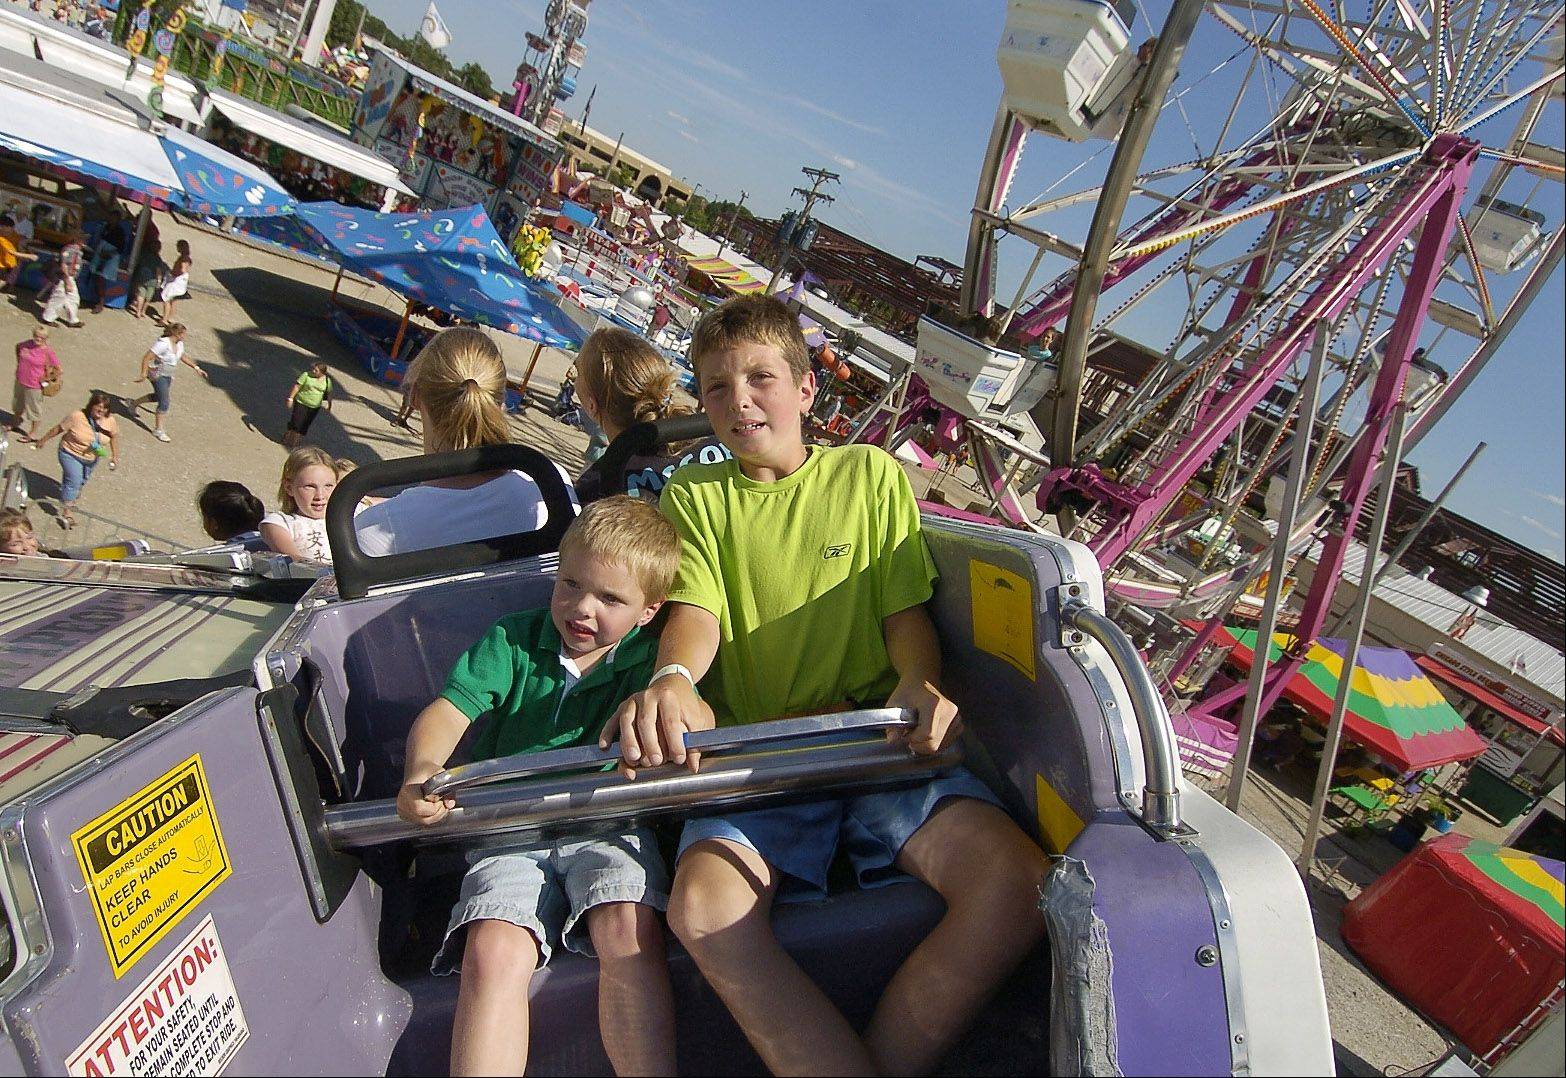 From left, brothers Kevin White, 4, and Brian White, 10 of Warrenville take a spin on the Wipeout ride at the Kane County Fair in St. Charles. The fair opens Wednesday, July 17, and runs through Sunday, July 21.